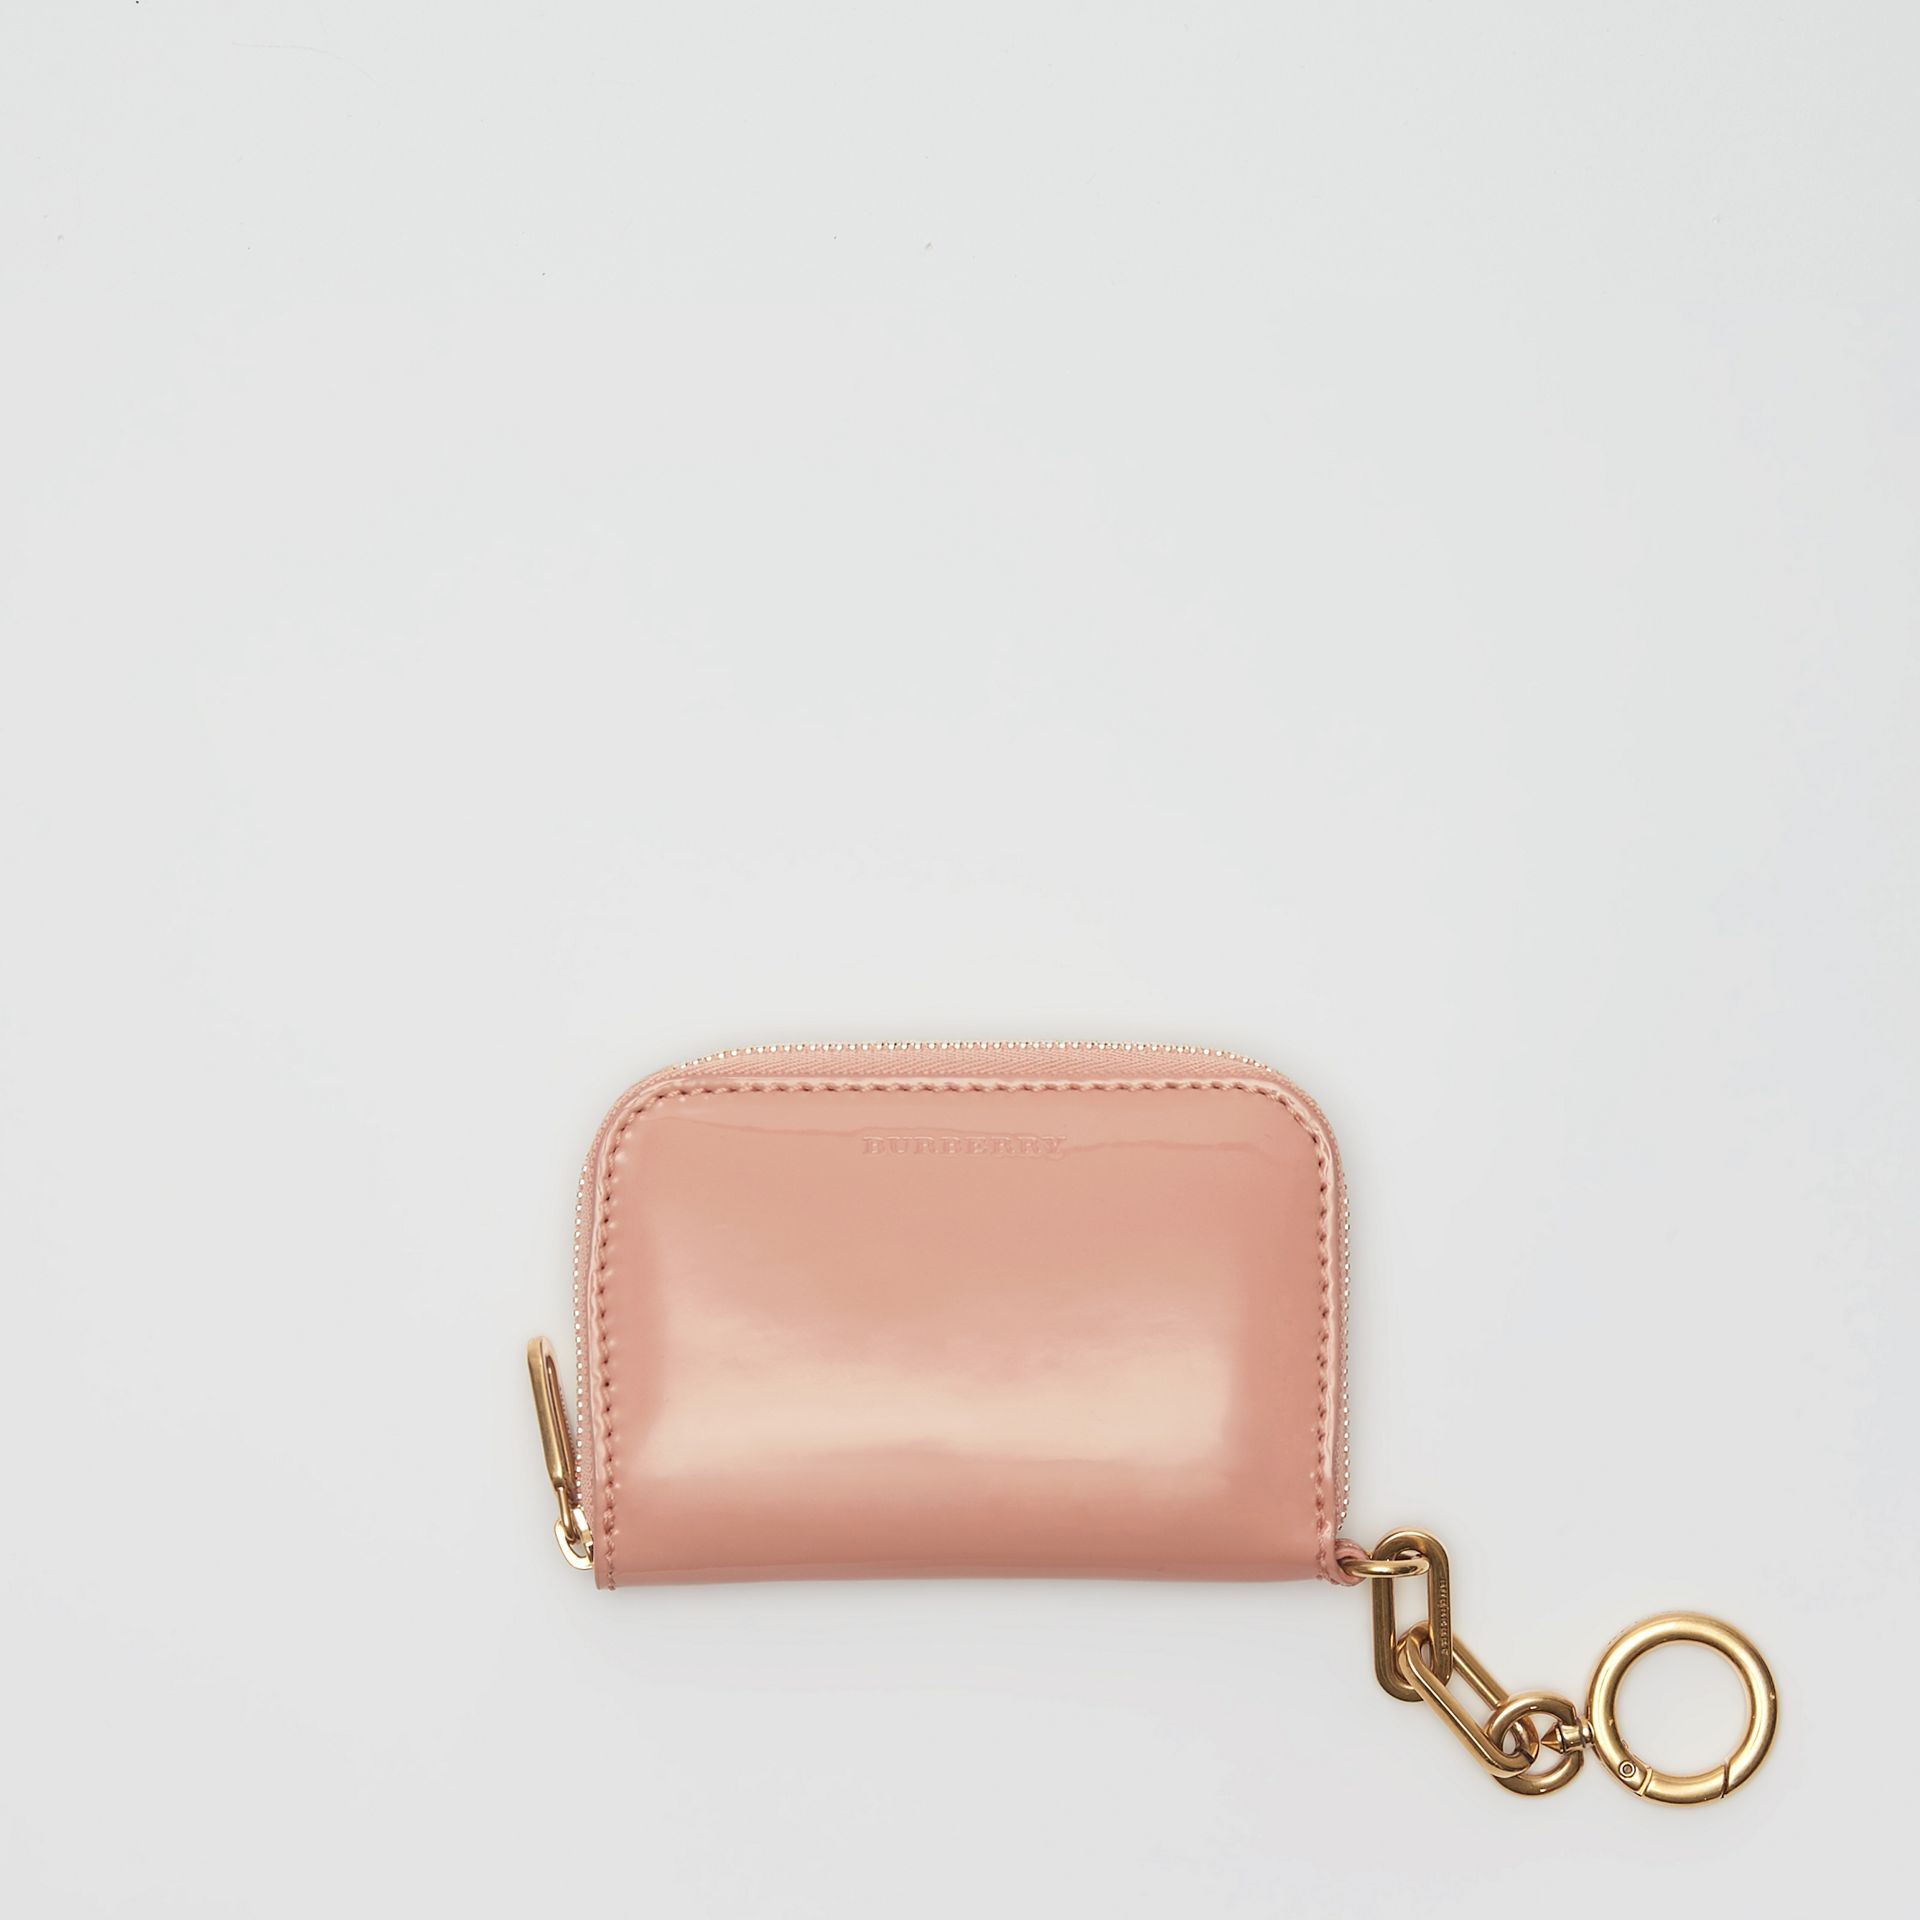 Link Detail Patent Leather Ziparound Wallet in Pale Fawn Pink - Women | Burberry United Kingdom - gallery image 2